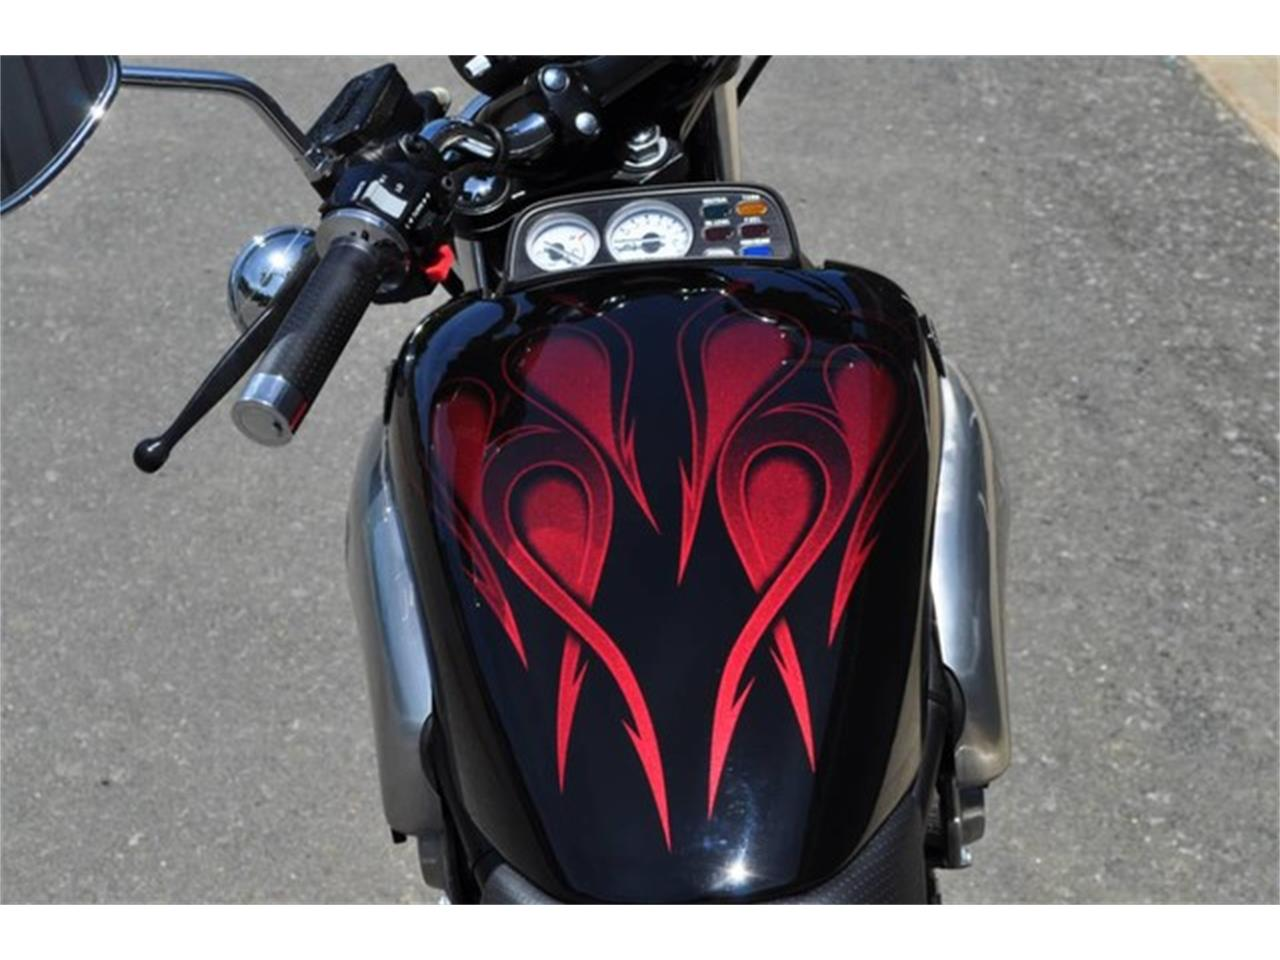 Large Picture of '07 Motorcycle - QBOA